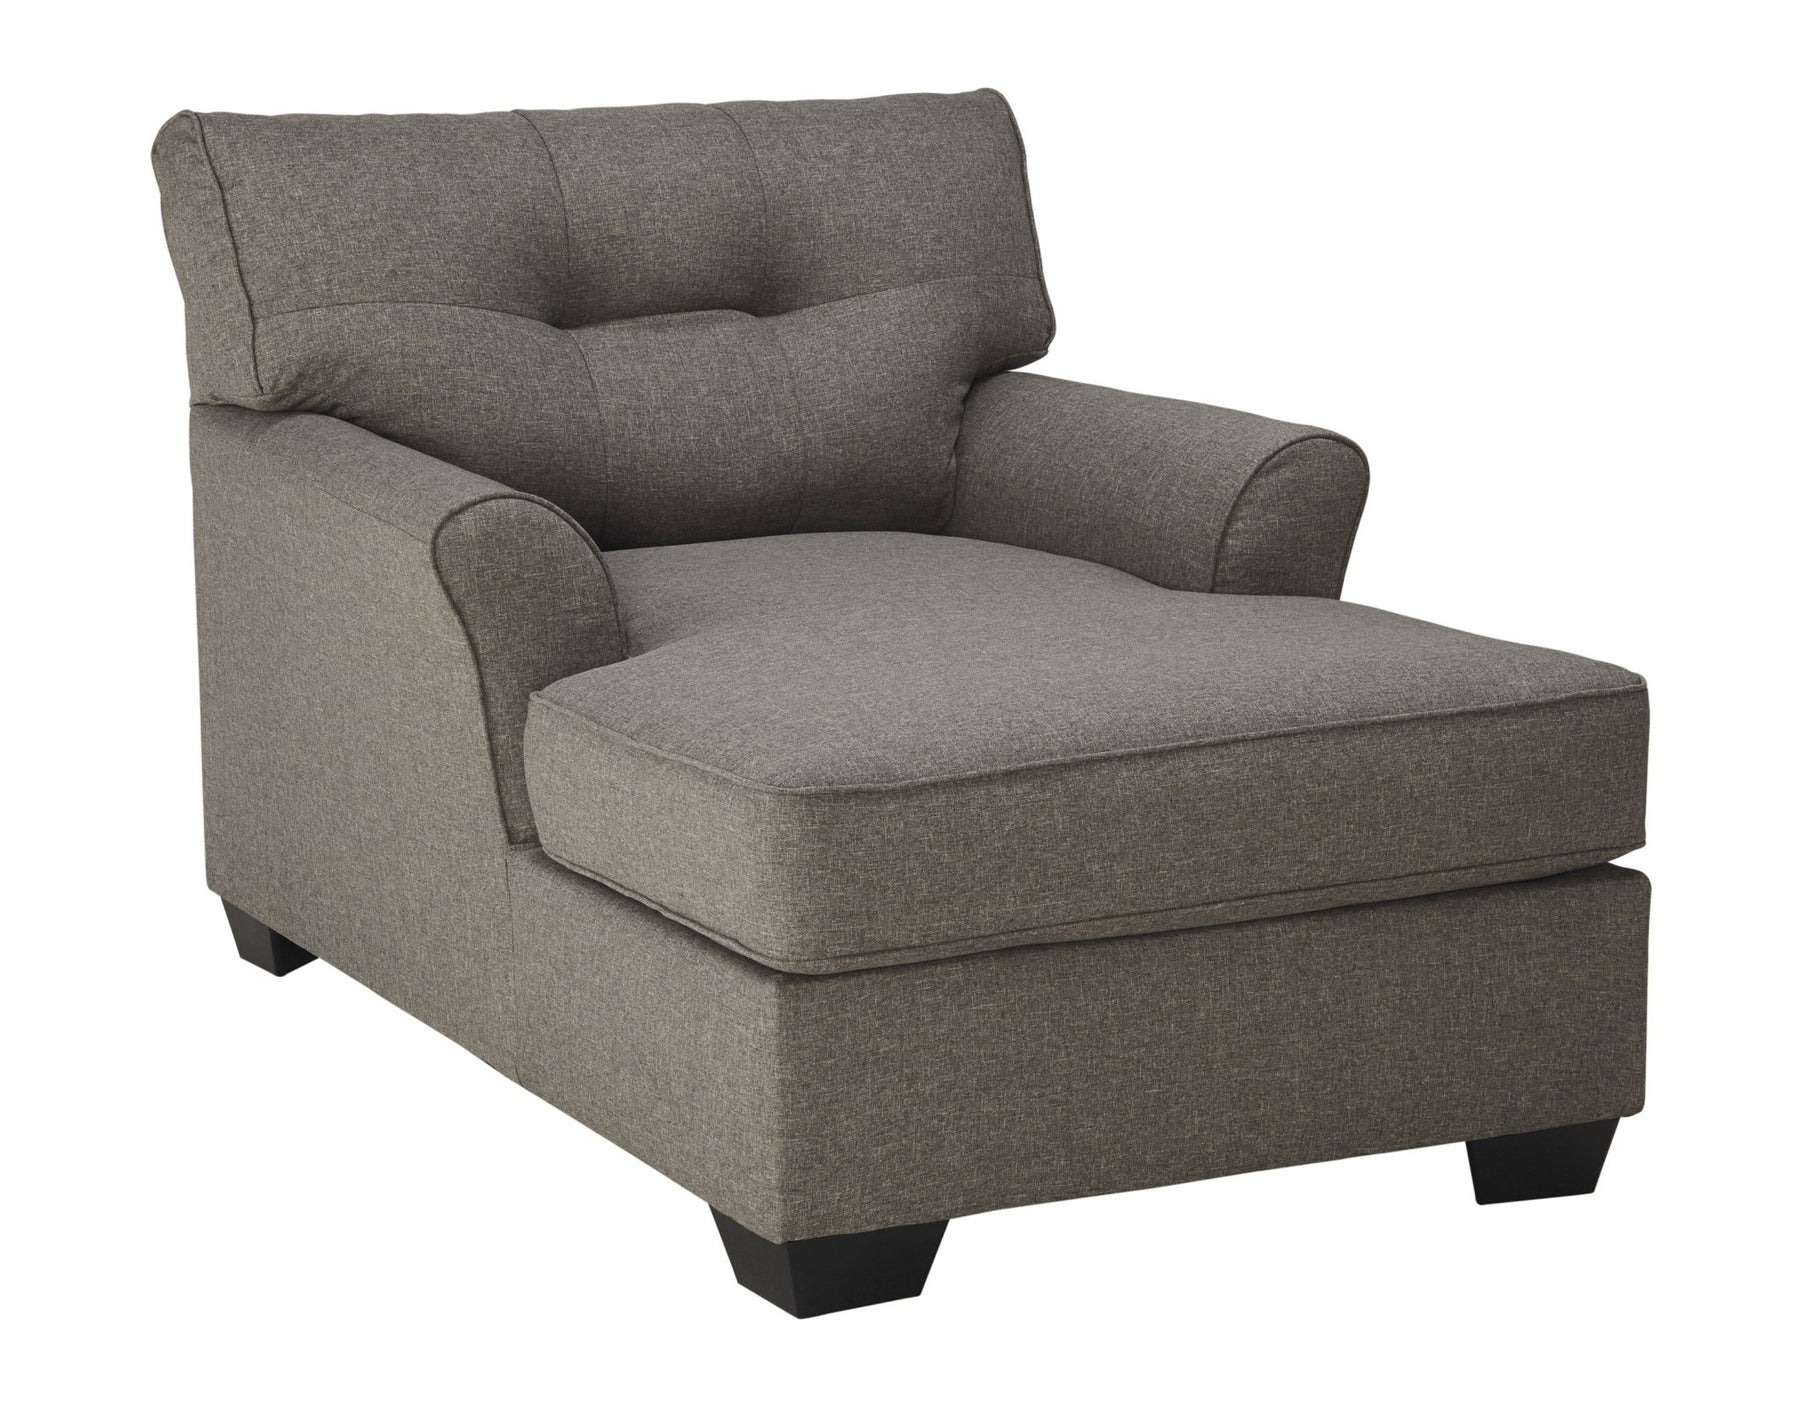 Tibbee Slate Chaise - Austin's Couch Potatoes Furniture